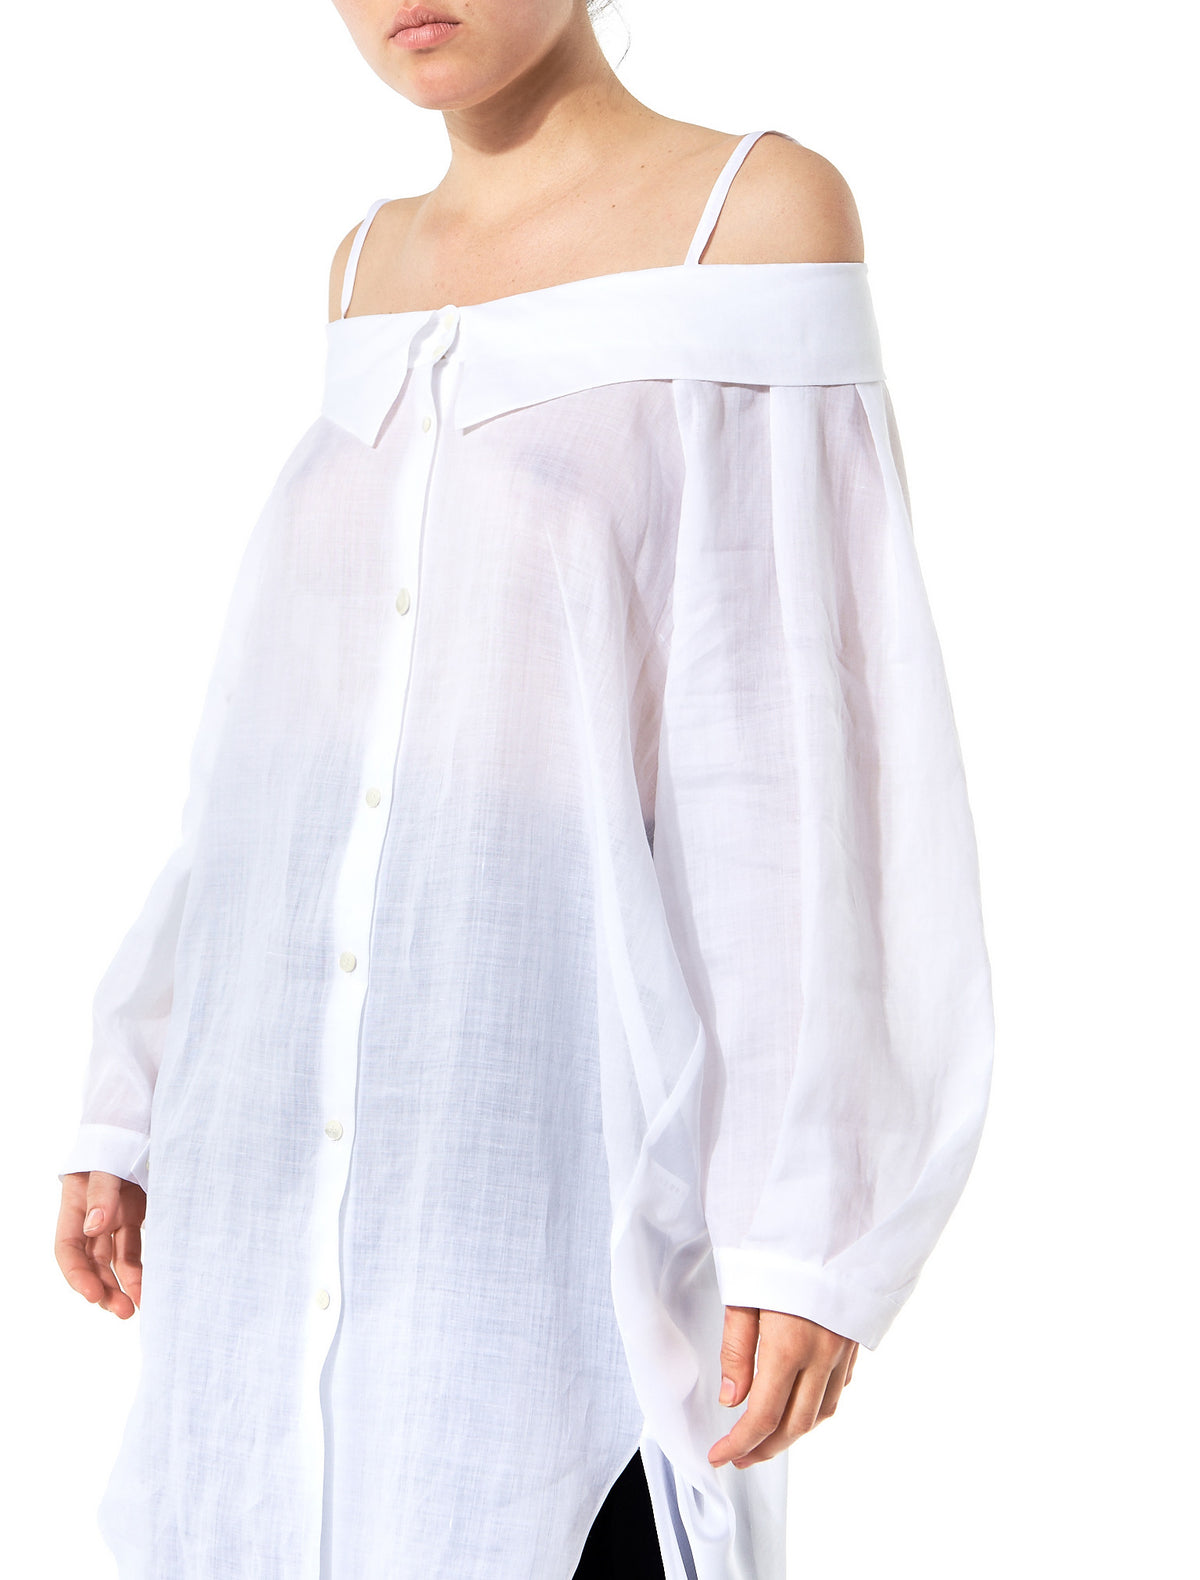 Draped Linen Dress (GLS-SD52-WHITE) - H. Lorenzo